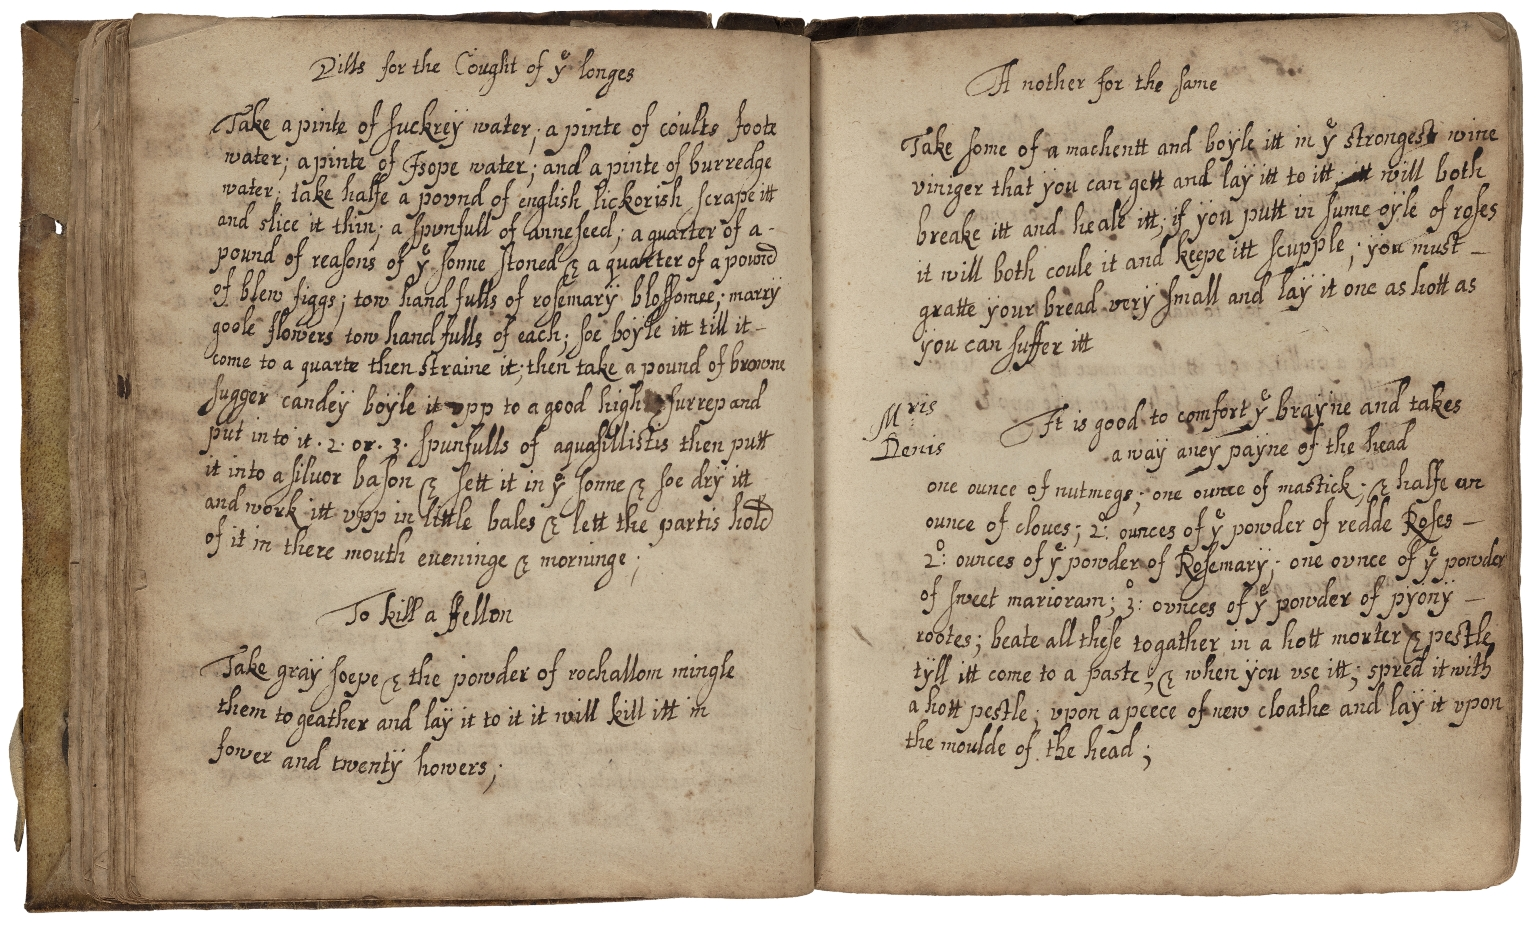 Receipt book of Margaret Baker [manuscript]